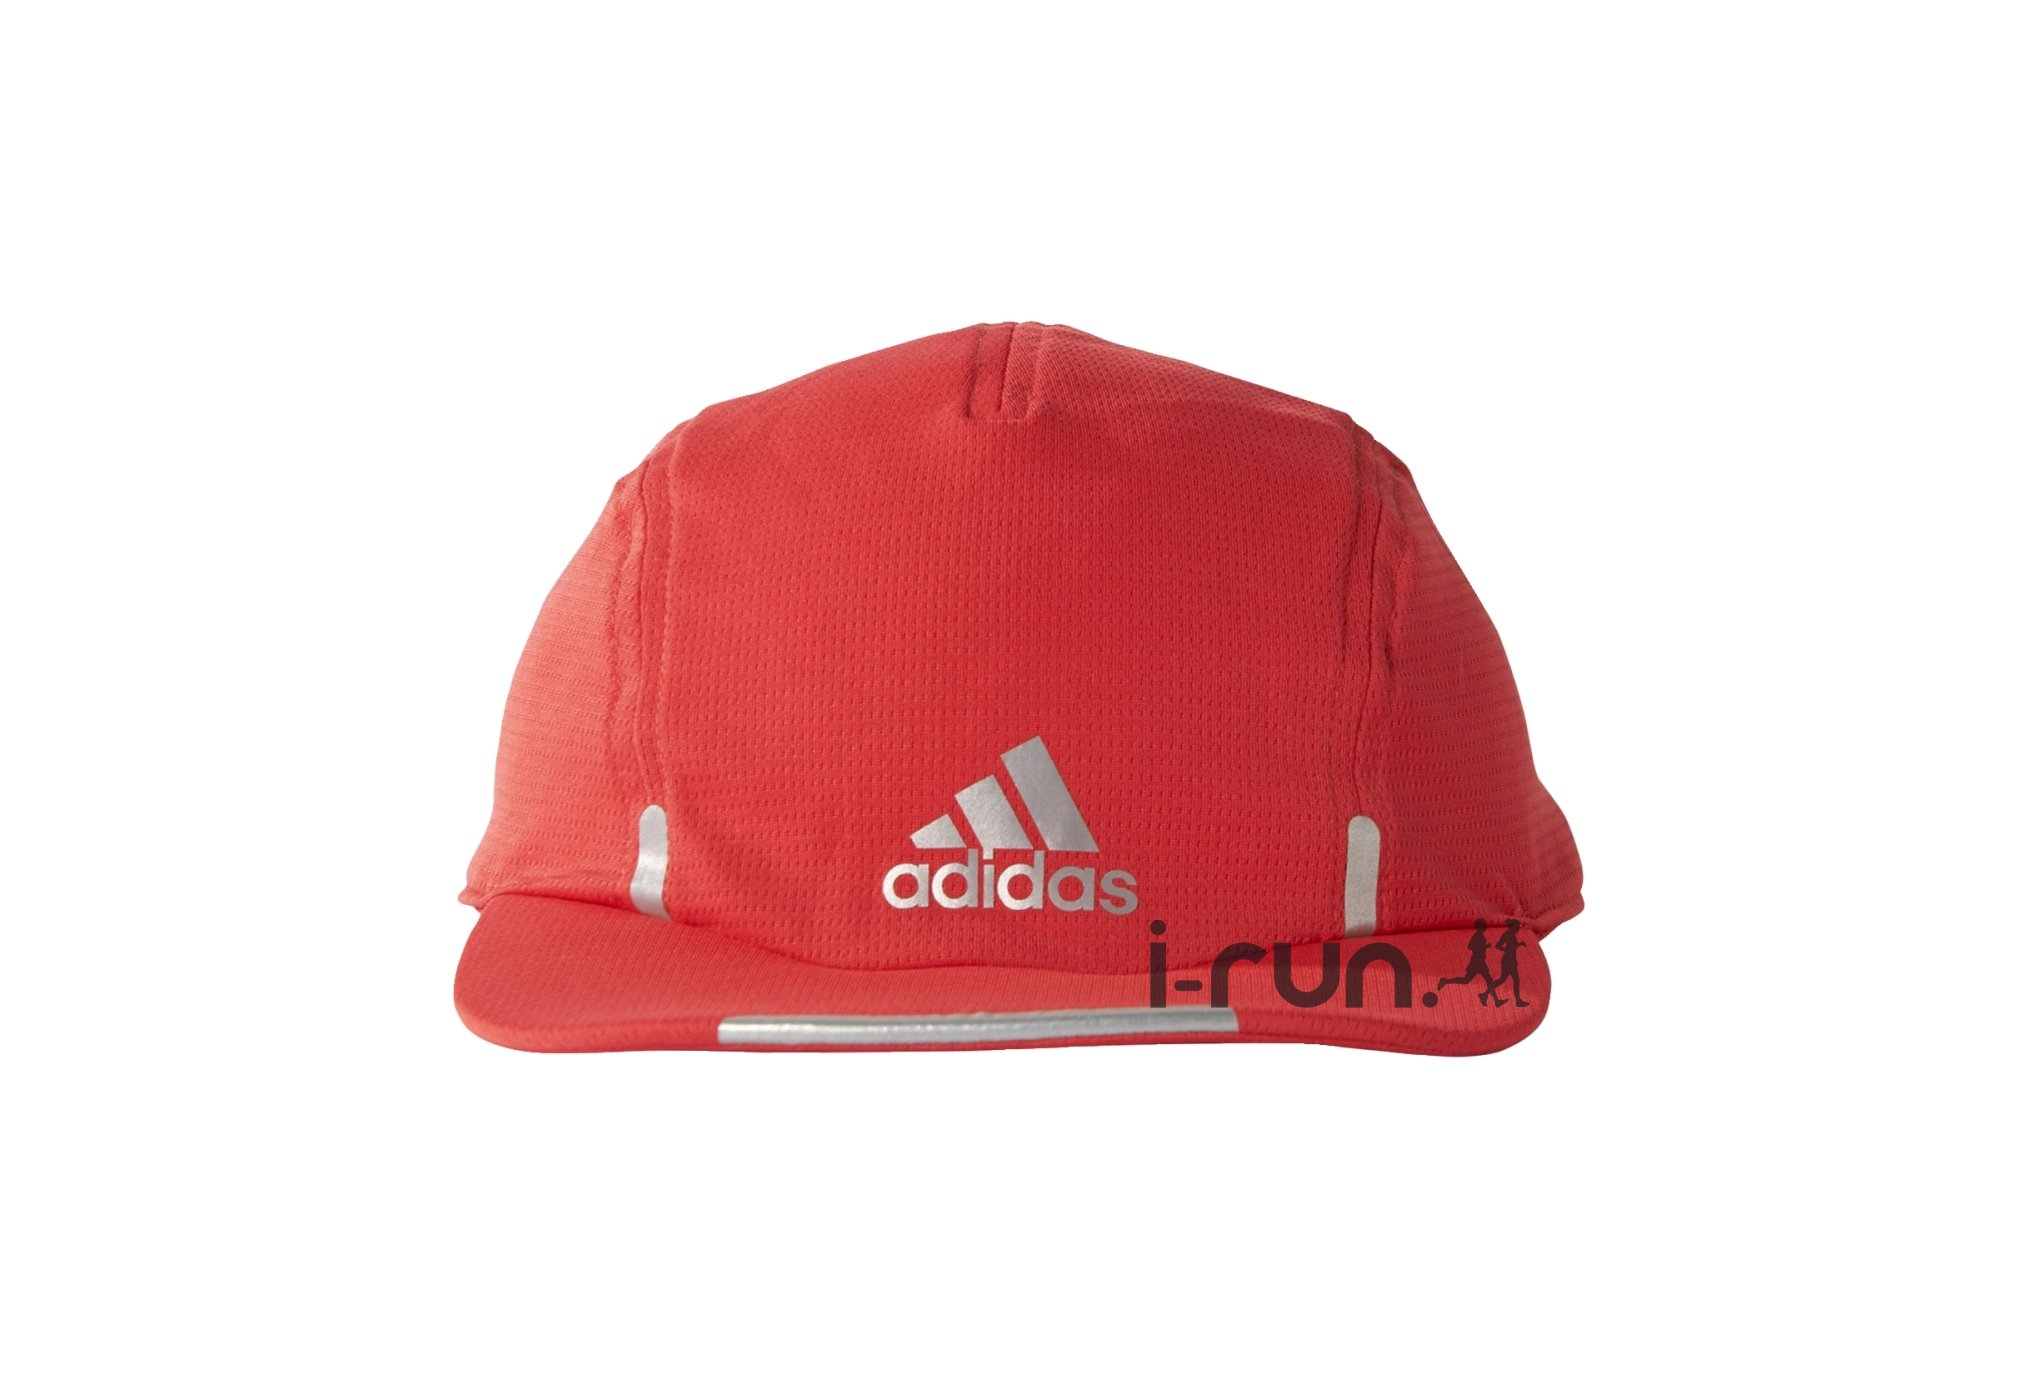 Adidas Climacool running w casquettes / bandeaux